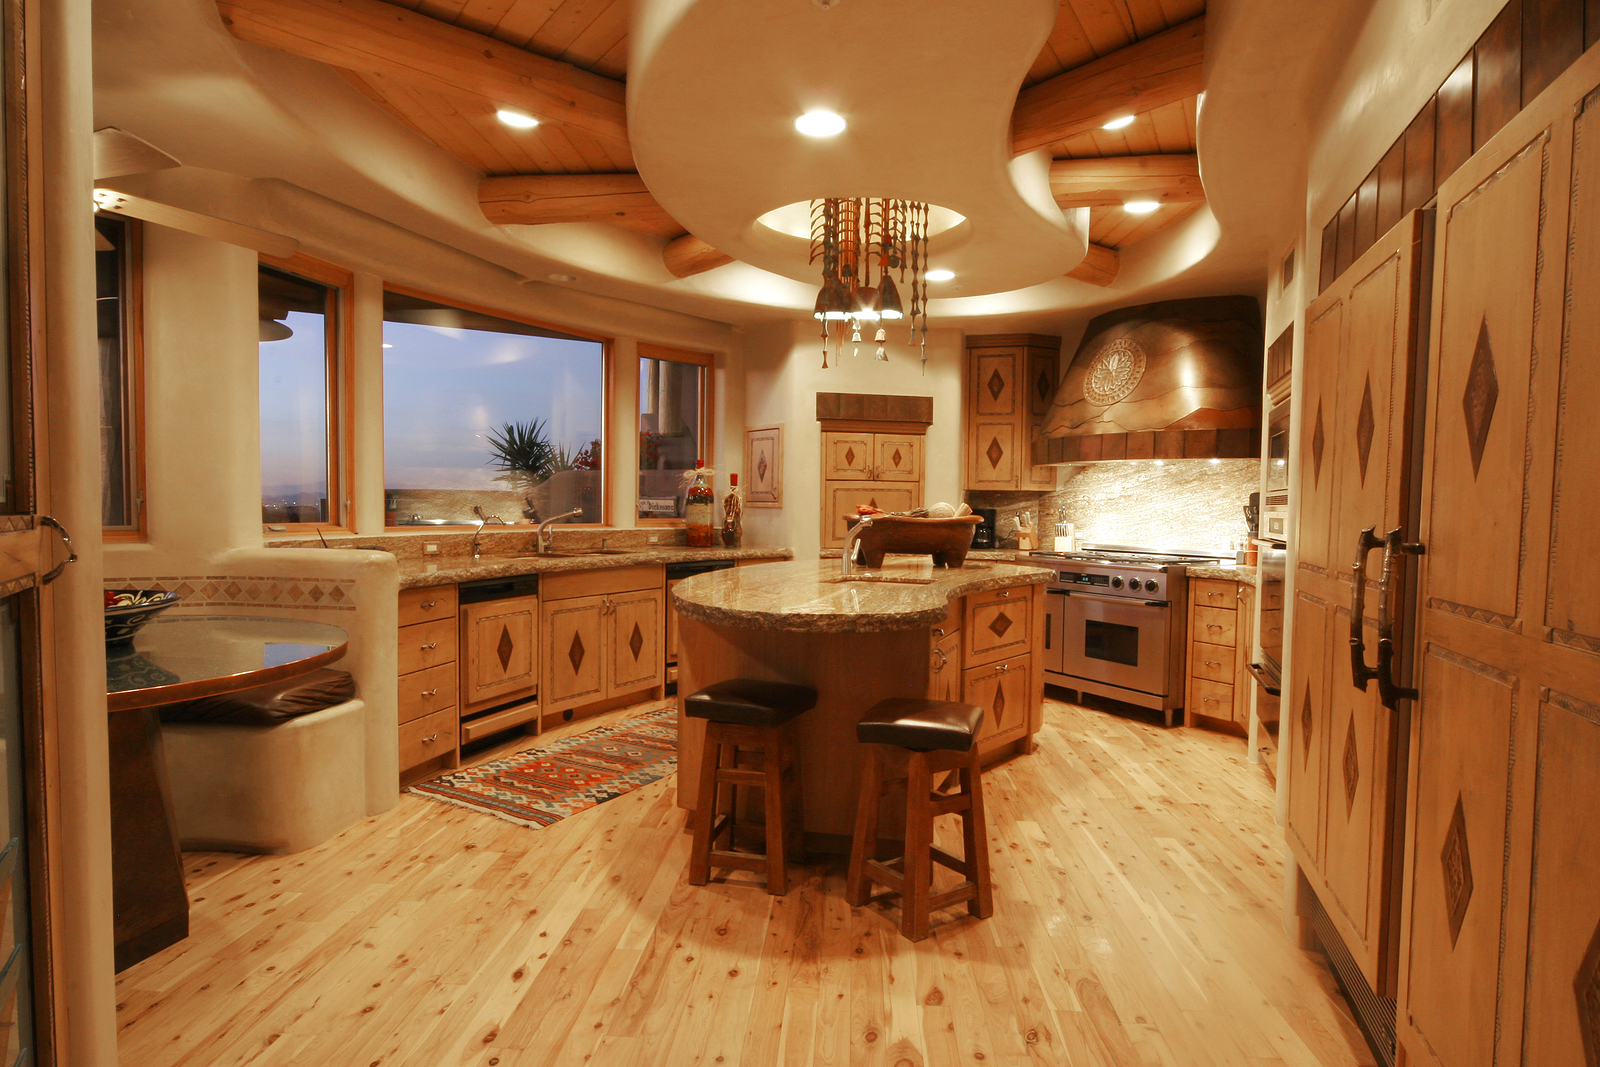 Tuscany kitchen curtains | | Kitchen ideas on kitchen cabinets on a budget, beautiful kitchens on a budget, wall decor ideas on a budget, outdoor rooms with curtains on a budget, country kitchens on a budget, farmhouse kitchens on a budget, rustic kitchens on a budget, kitchen islands on a budget, bathroom design ideas on a budget, old small kitchen budget, kitchen floor on a budget, tuscan decorating ideas budget, tuscan decor, french designs on a budget, kitchen countertops on a budget,